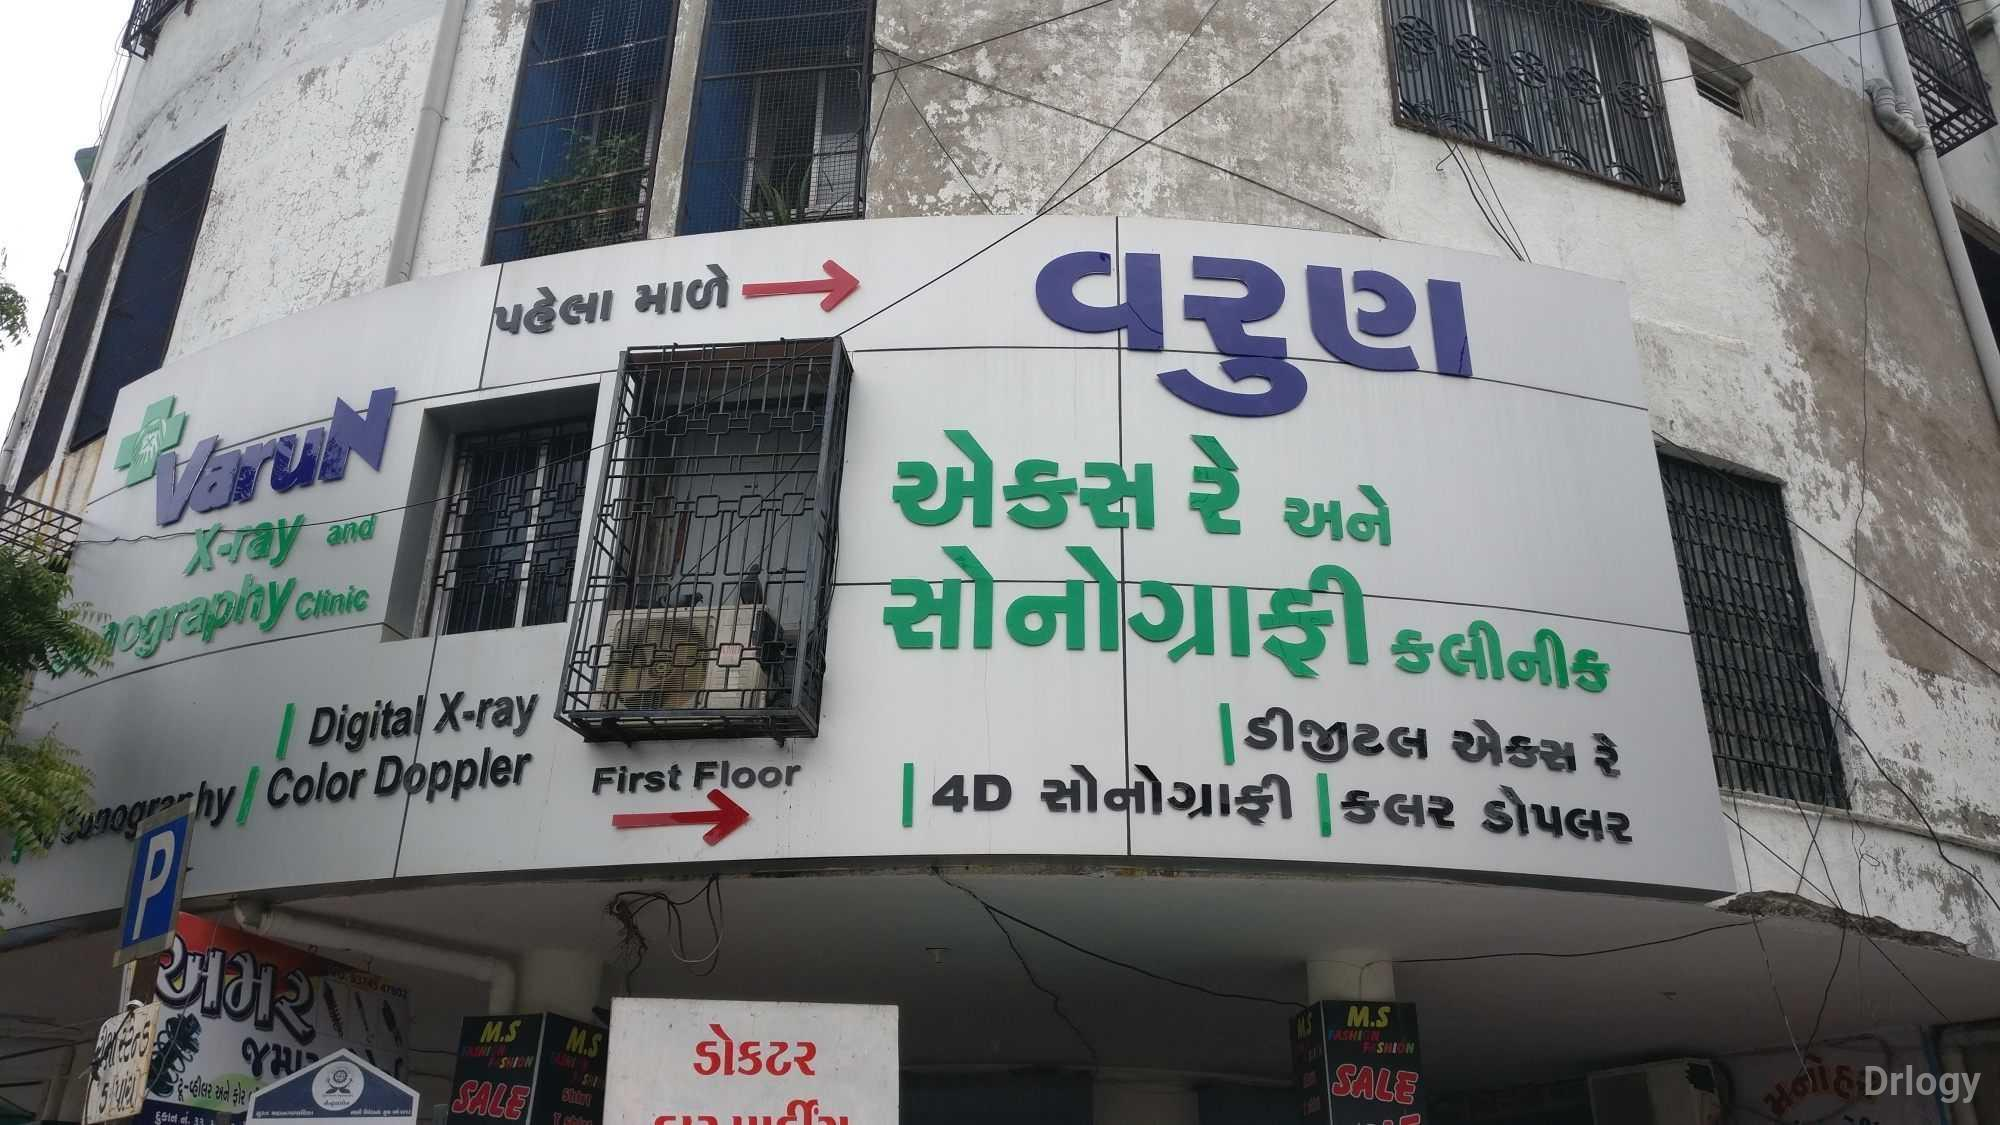 Varun Digital Xray And 4-D Sonography Clinic in Surat